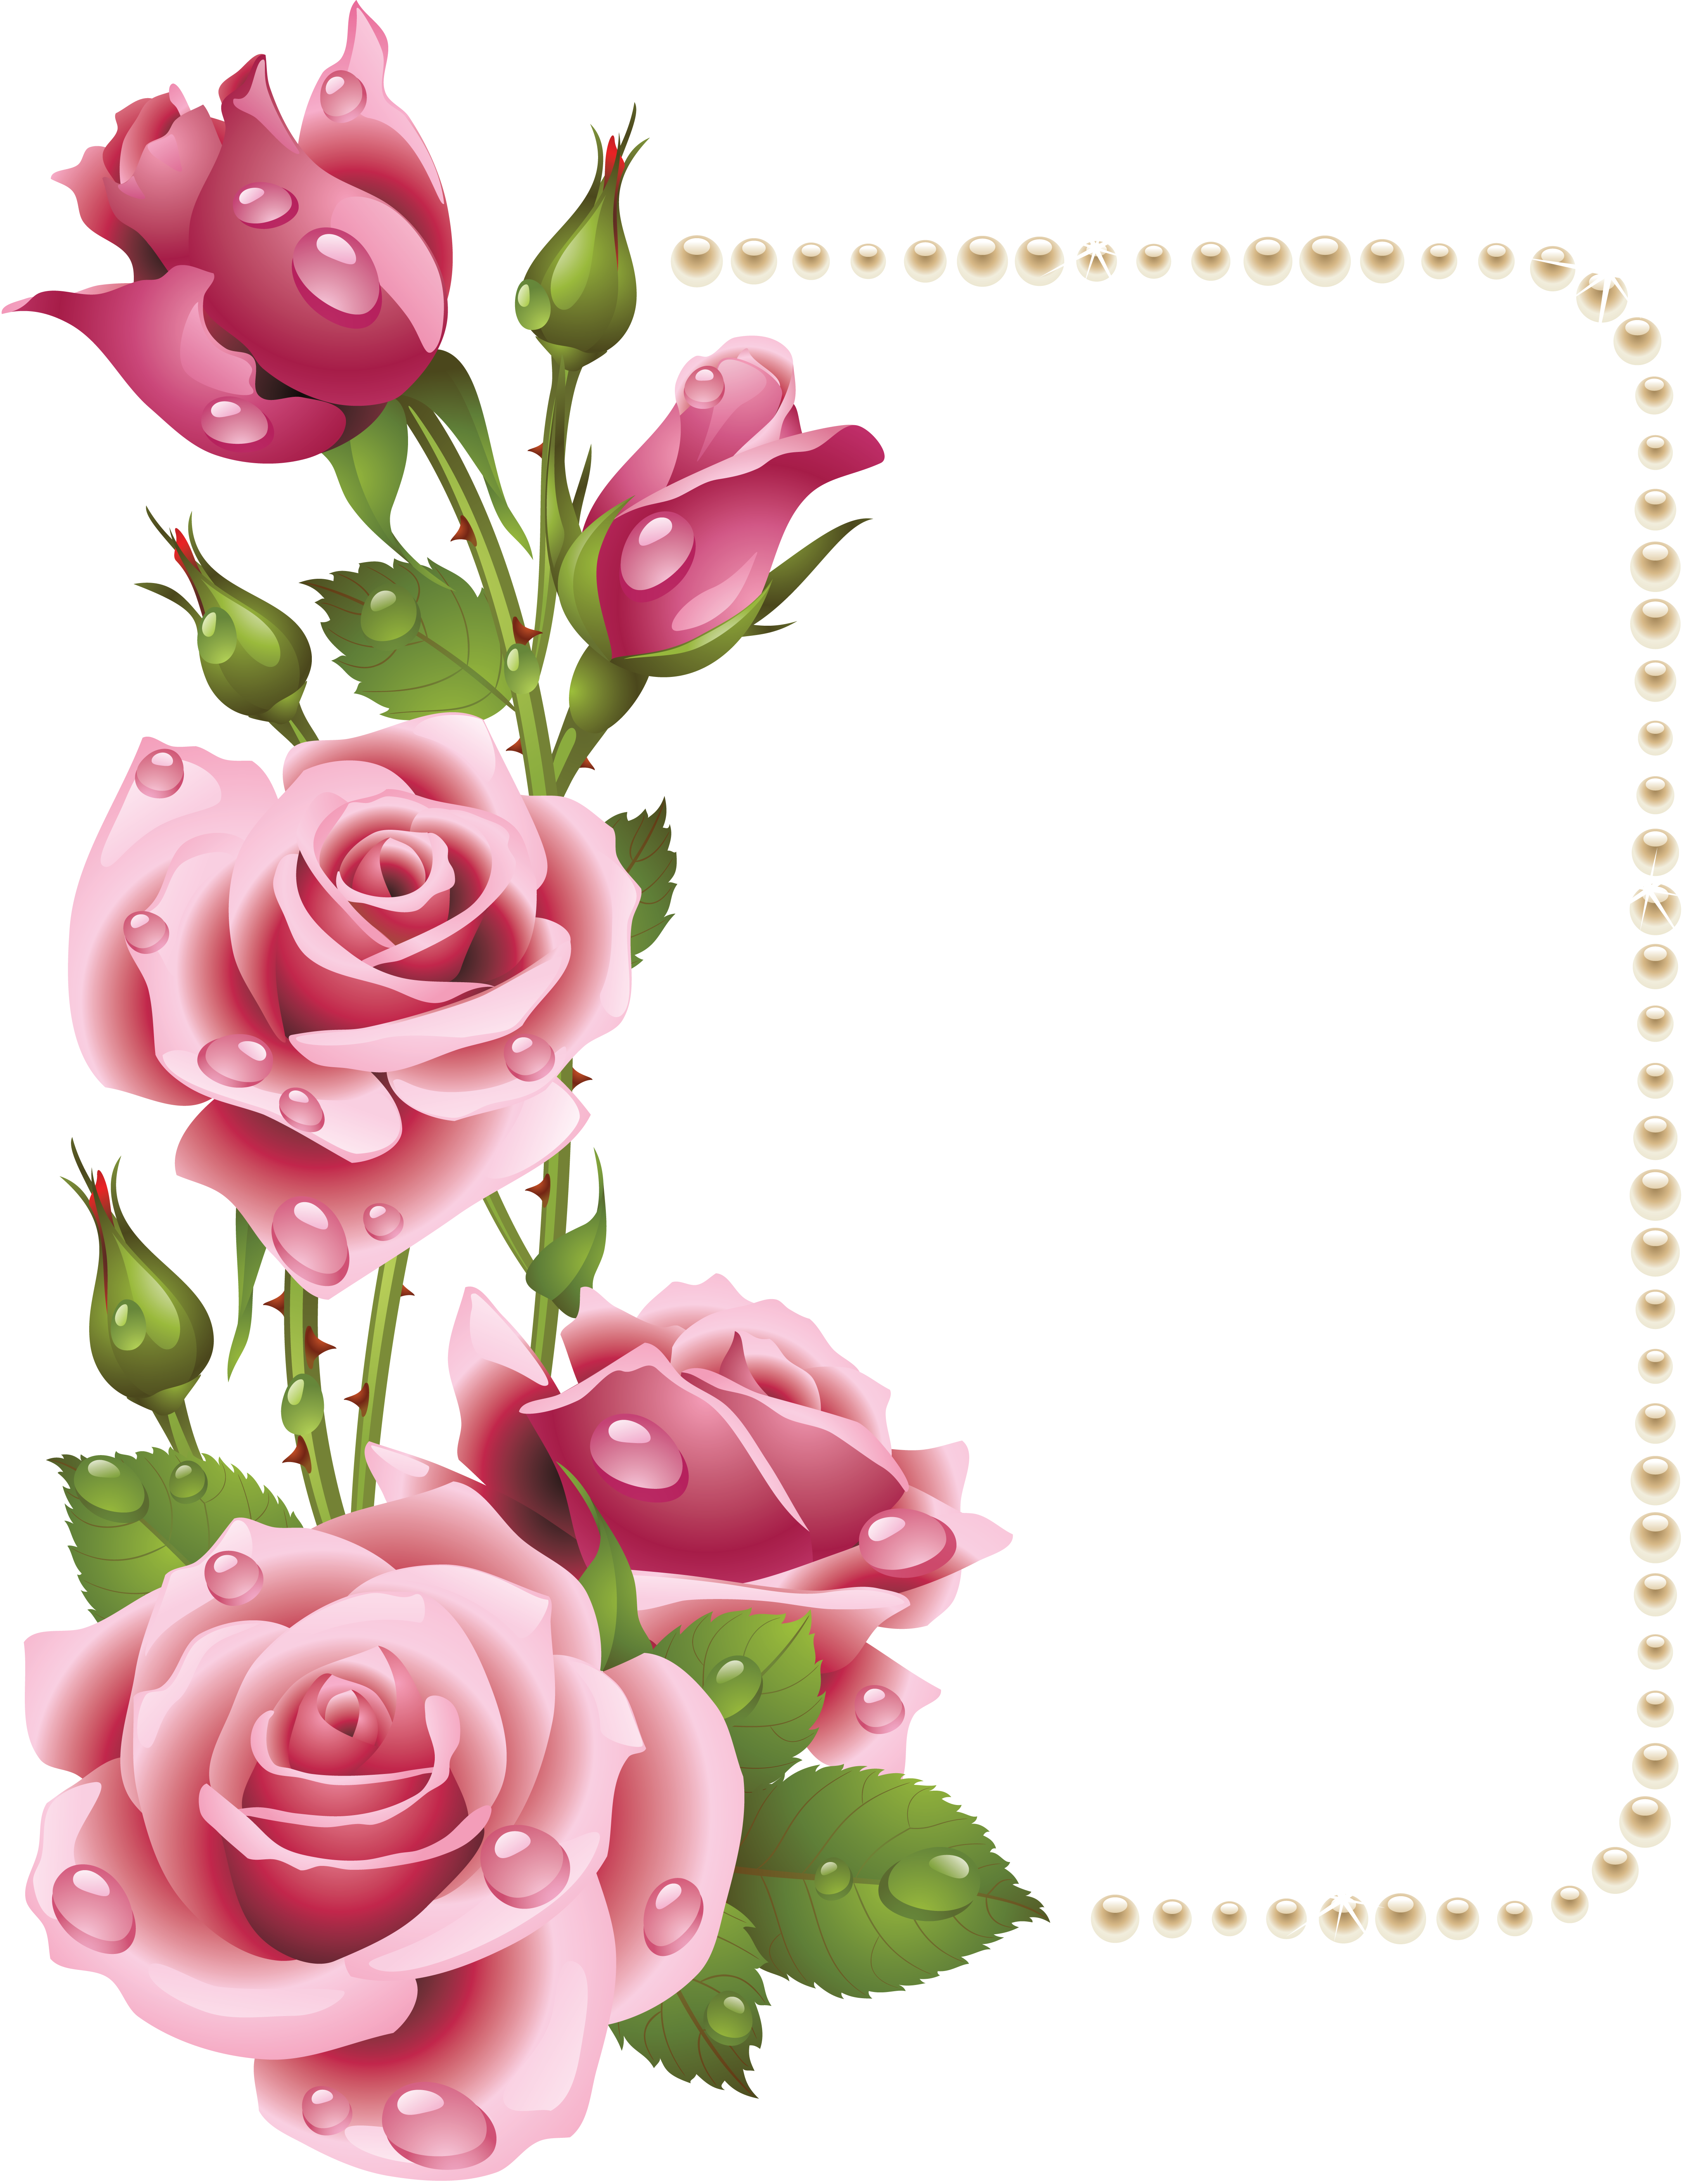 Flower with cross border clipart clip black and white stock Large Transparent Frame with Pink Roses and Pearls | Цветы ... clip black and white stock